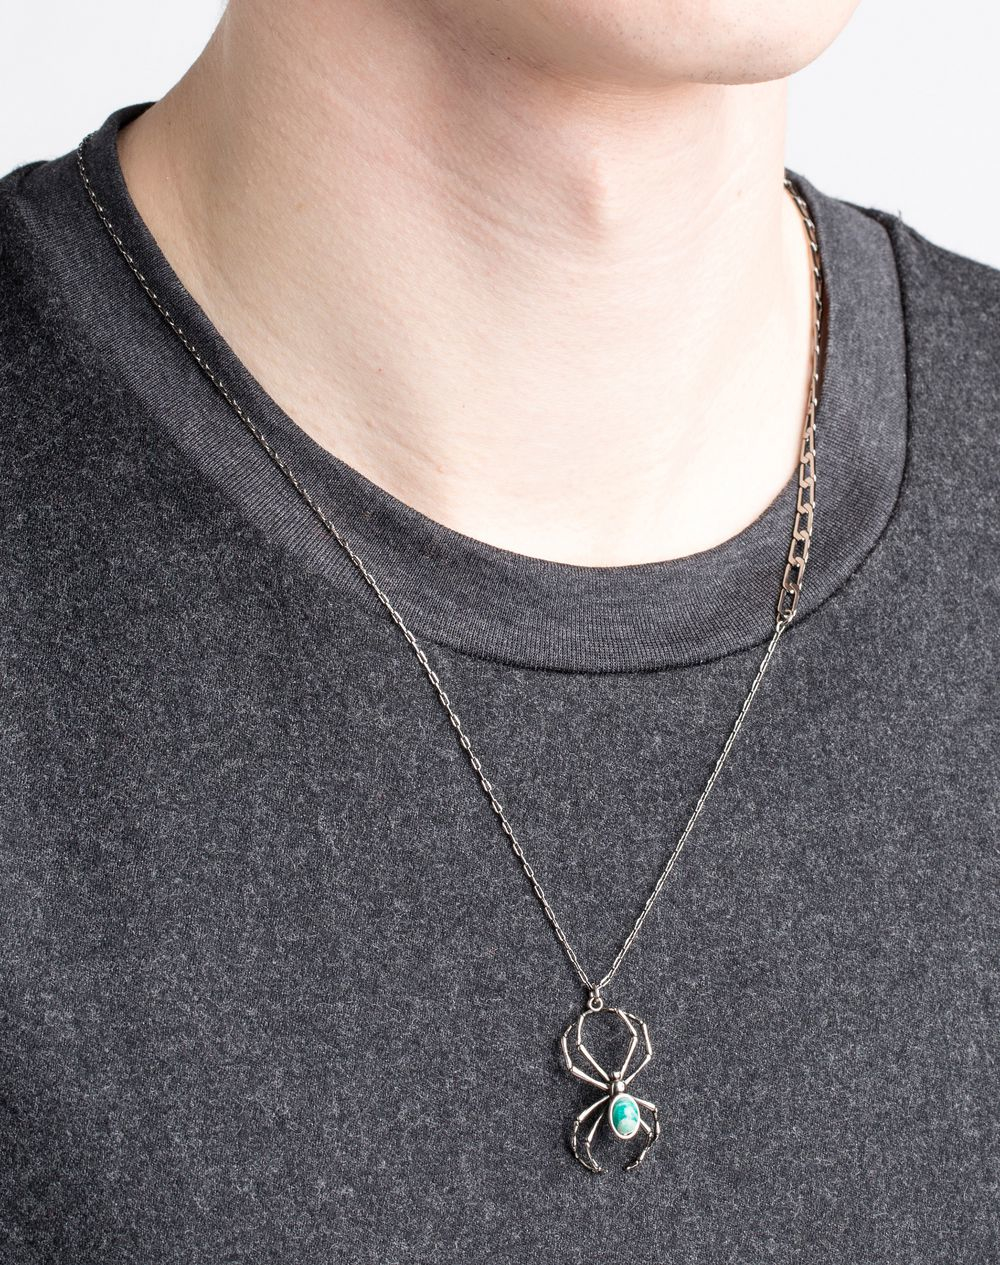 Lanvin Necklace in Metallic for Men